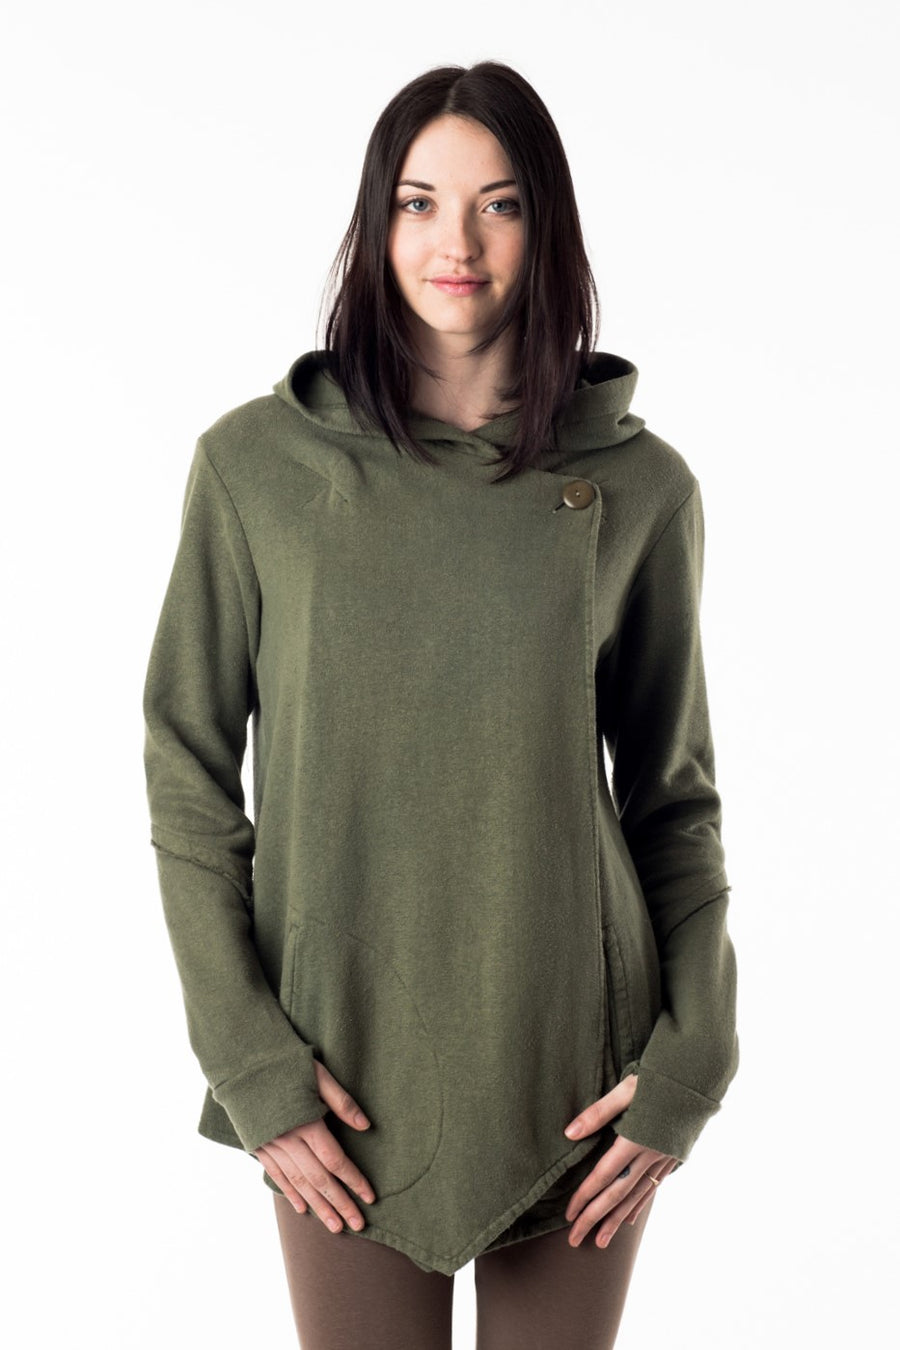 Slow fashion for the love of Gaia. Our eco lux organic cotton hemp fleece hoodie with pockets, comes in grey and is ethically made in Vancouver BC. Embrace your inner earth goddess!